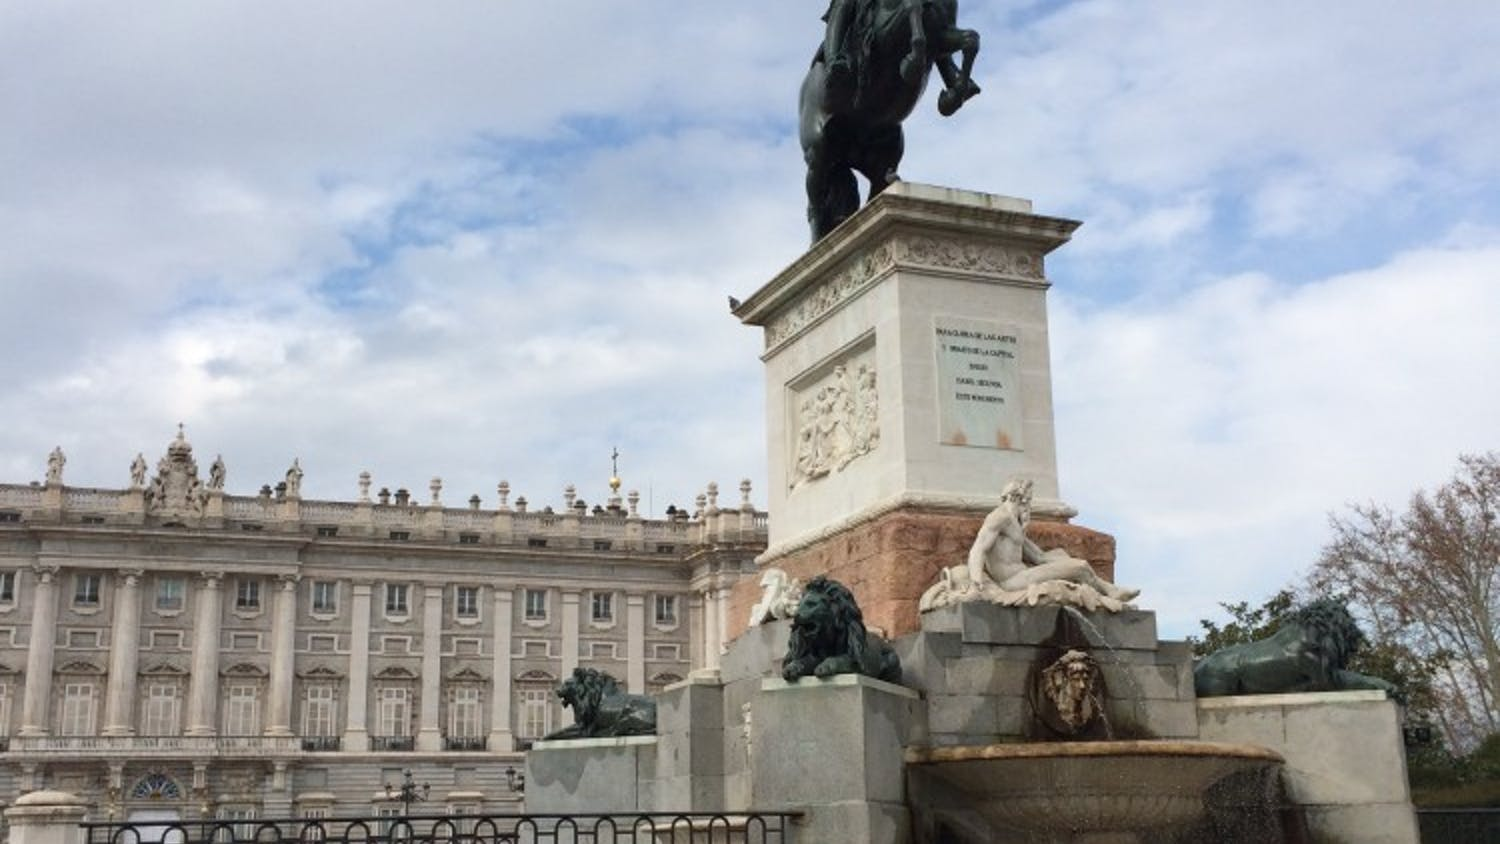 One of our staff writers,Rachel Lunsford, just arrived in Madrid, Spain, where she will be studying abroad for the next four months.